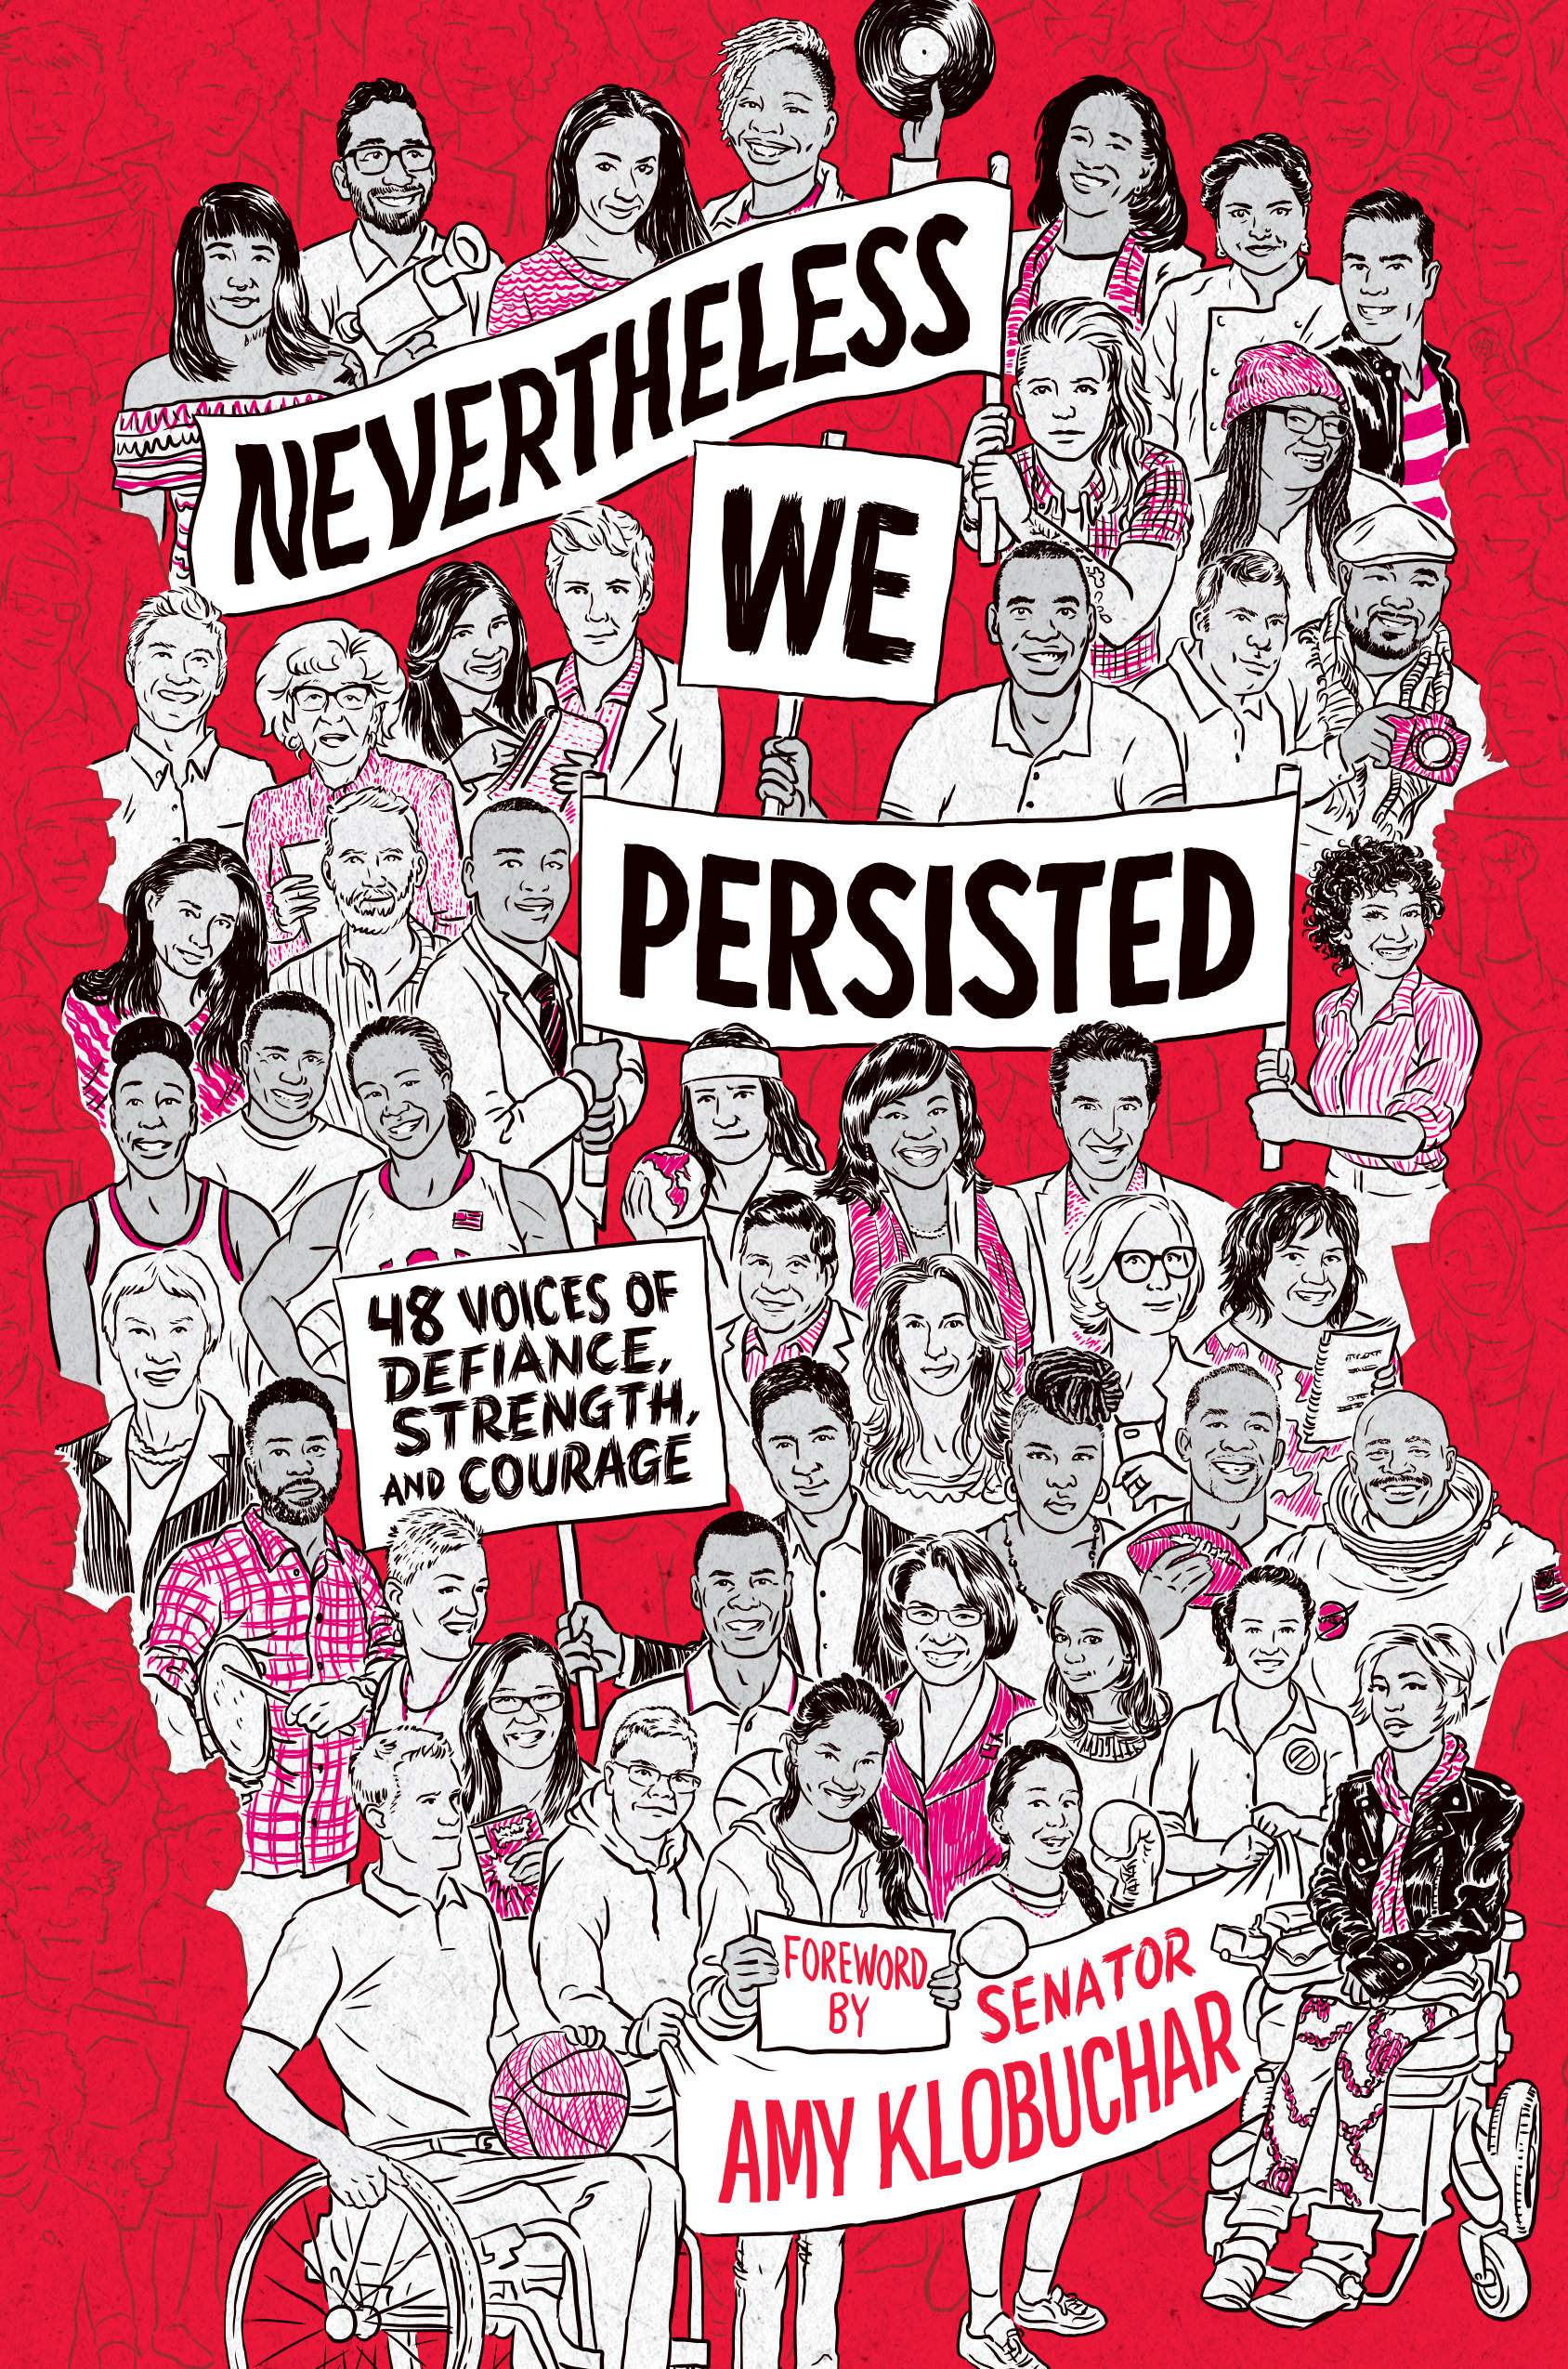 Nevertheless, We Persisted 48 Voices of Defiance, Strength, and Courage